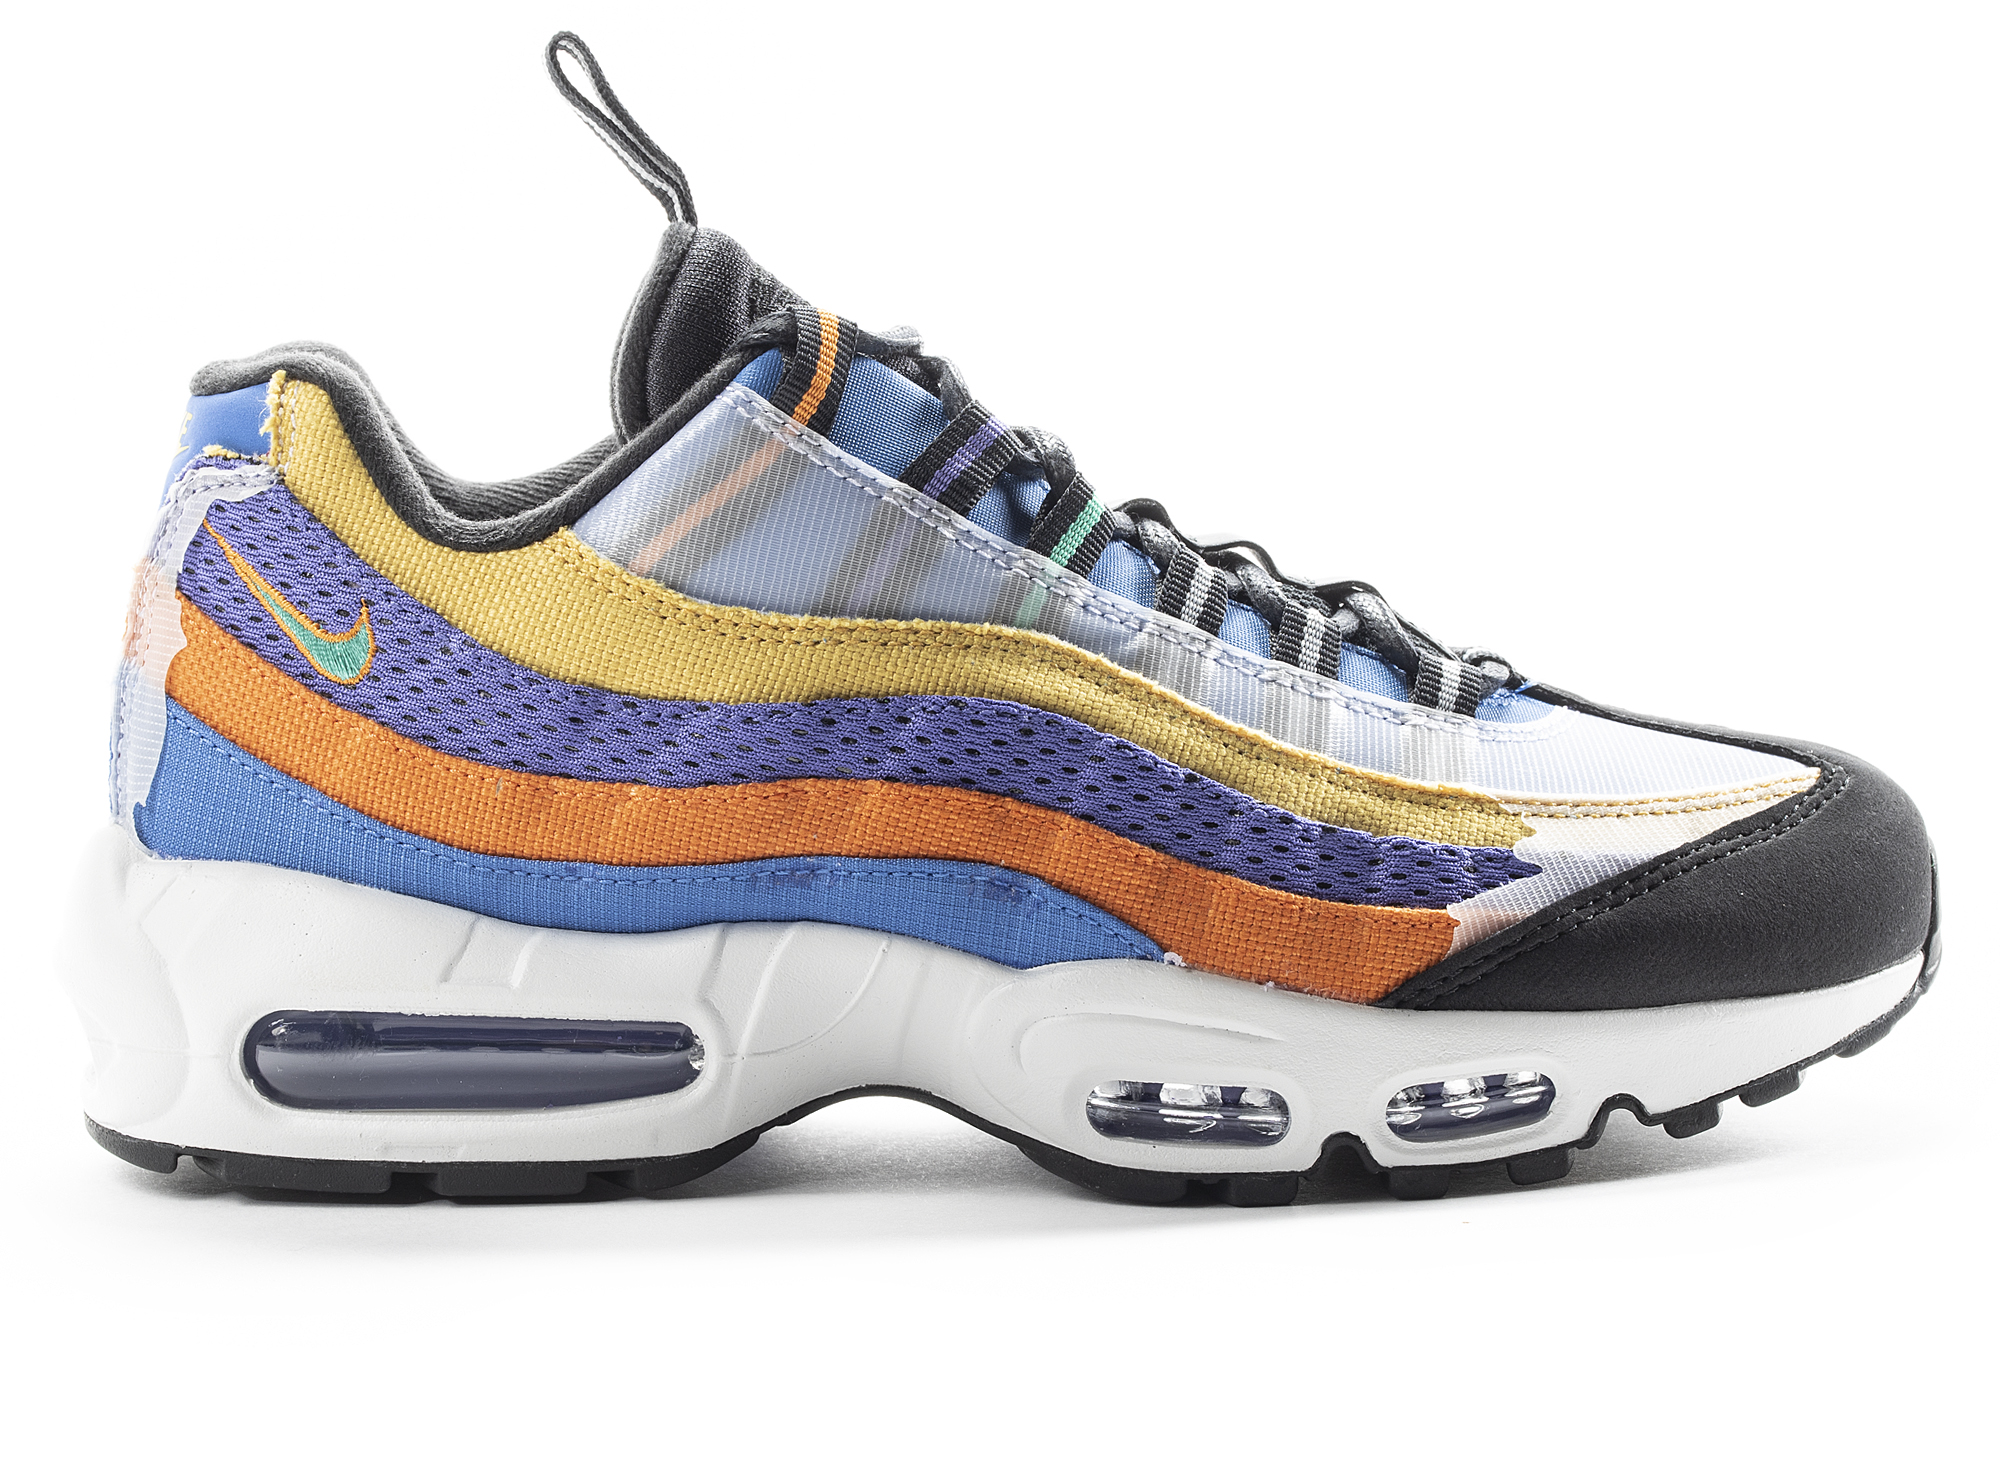 Nike Air Max 95 'Black History Month'